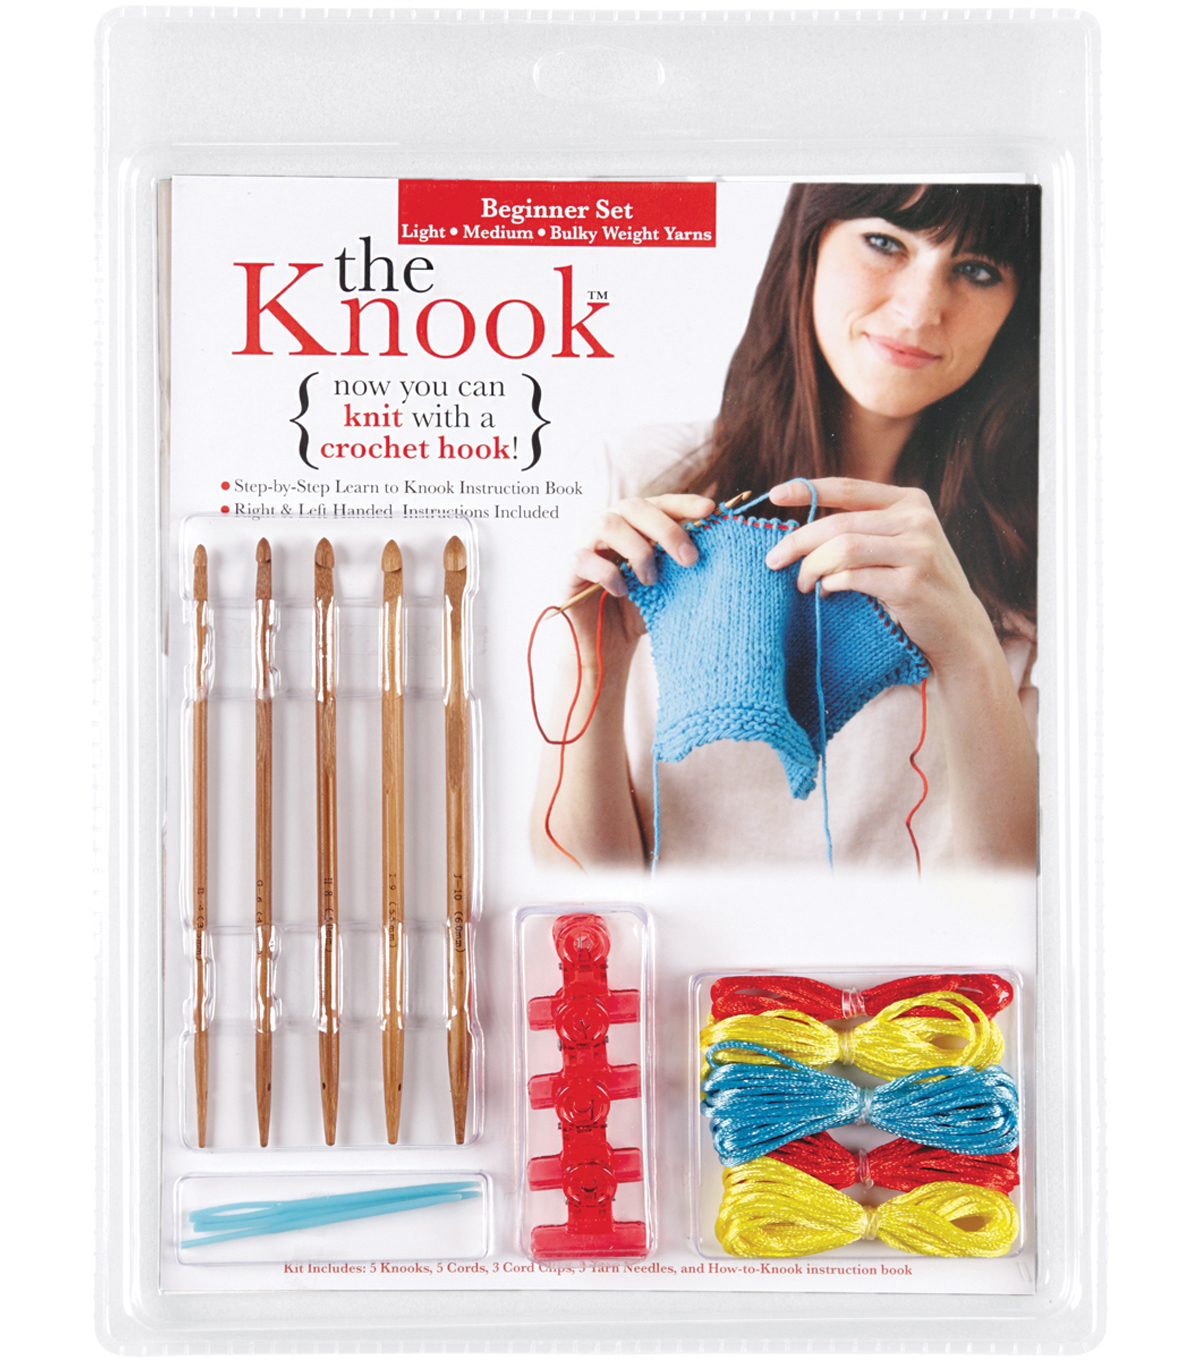 The Knook Beginner Set-Light Medium & Bulky Weight Yarn